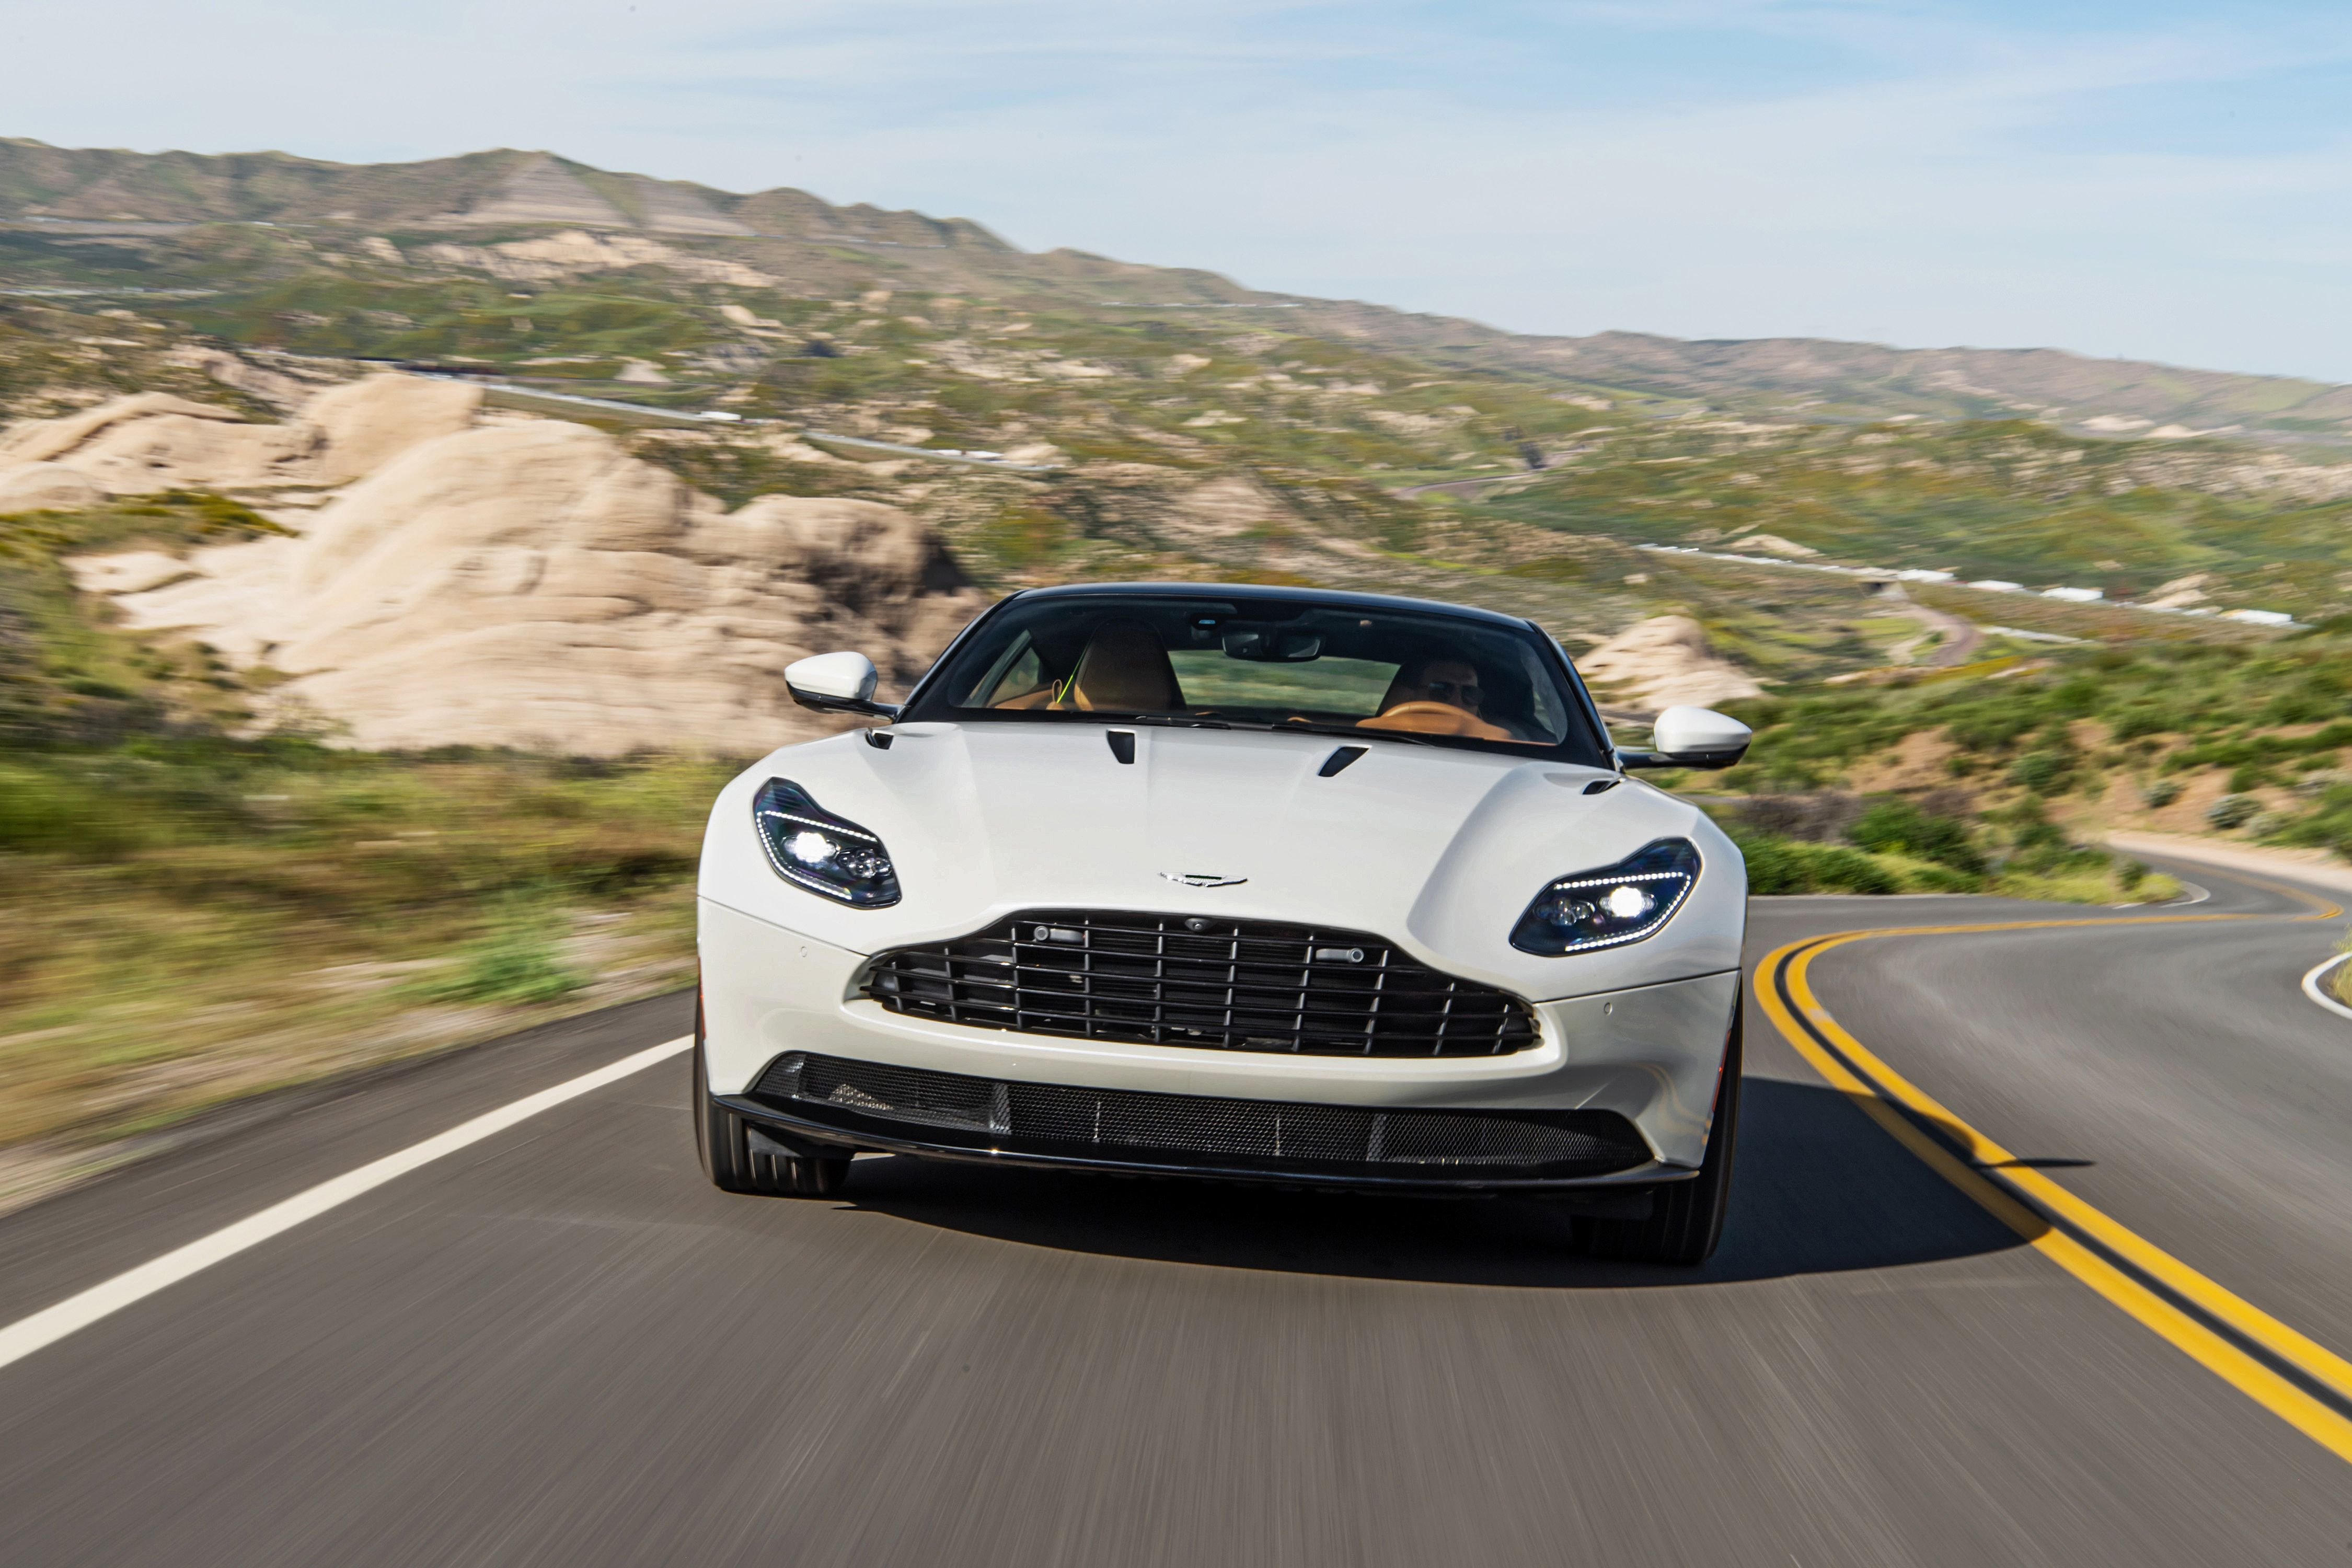 2020 Aston Martin Db11 Amr Answers To A Higher Power